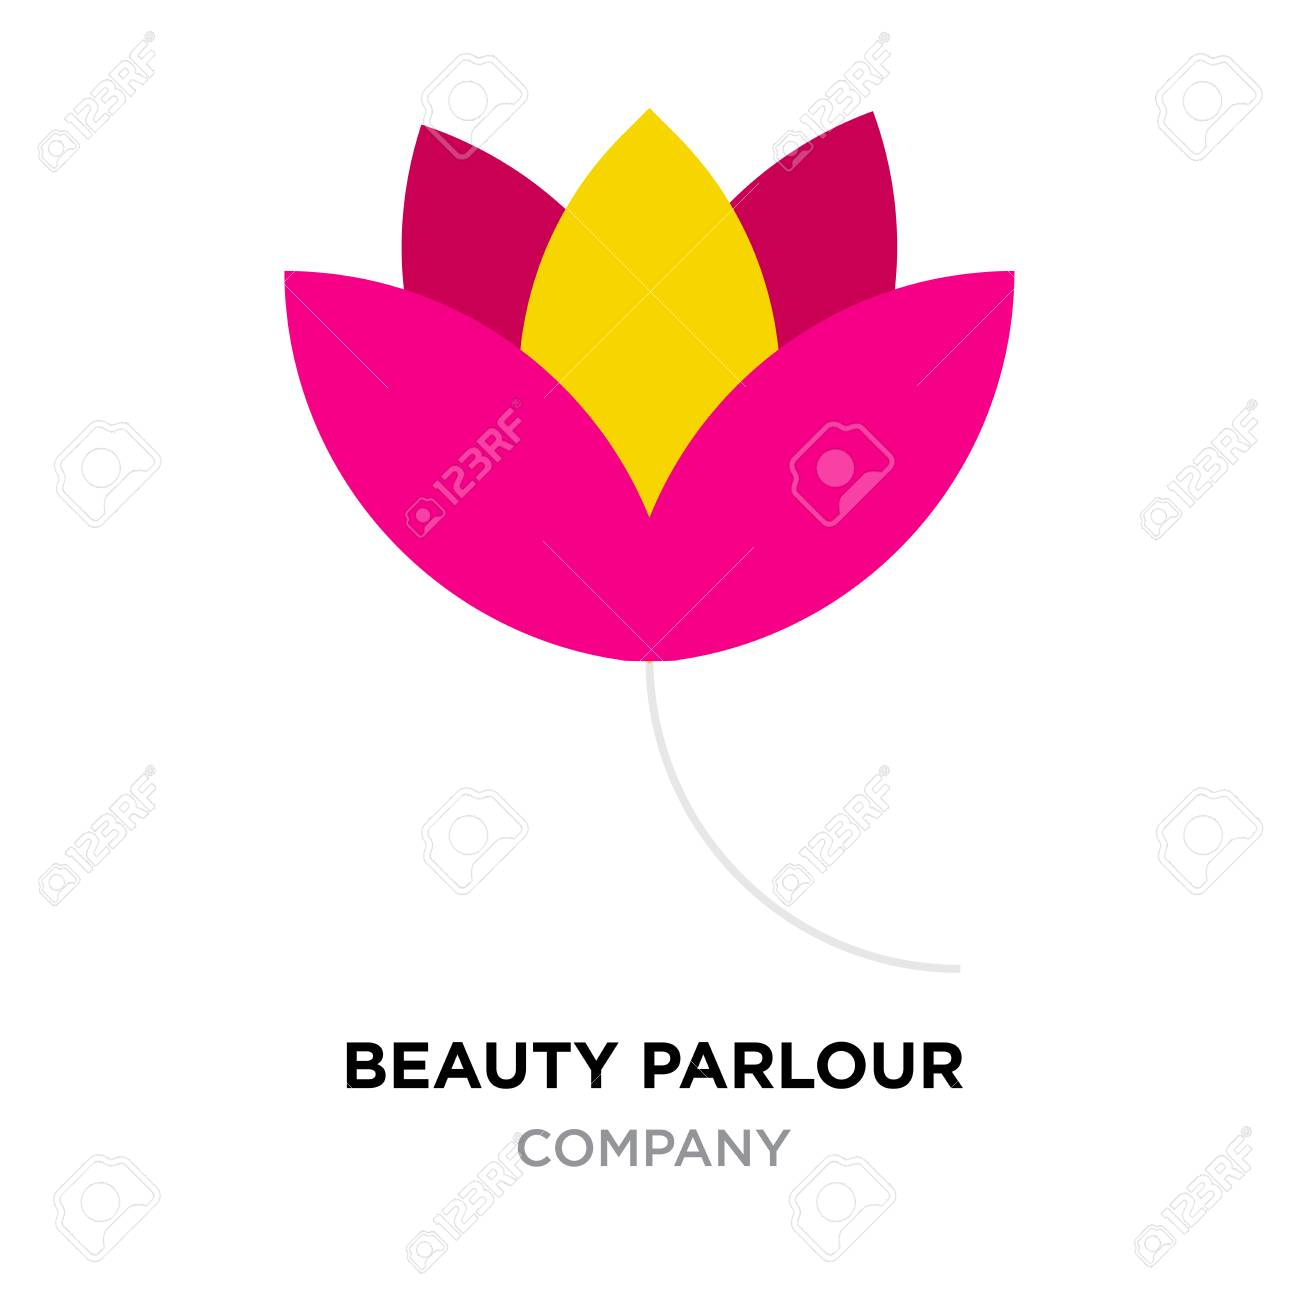 Beauty Parlour Logo For Company Red And Yellow Flower Vector Royalty Free Cliparts Vectors And Stock Illustration Image 96577614